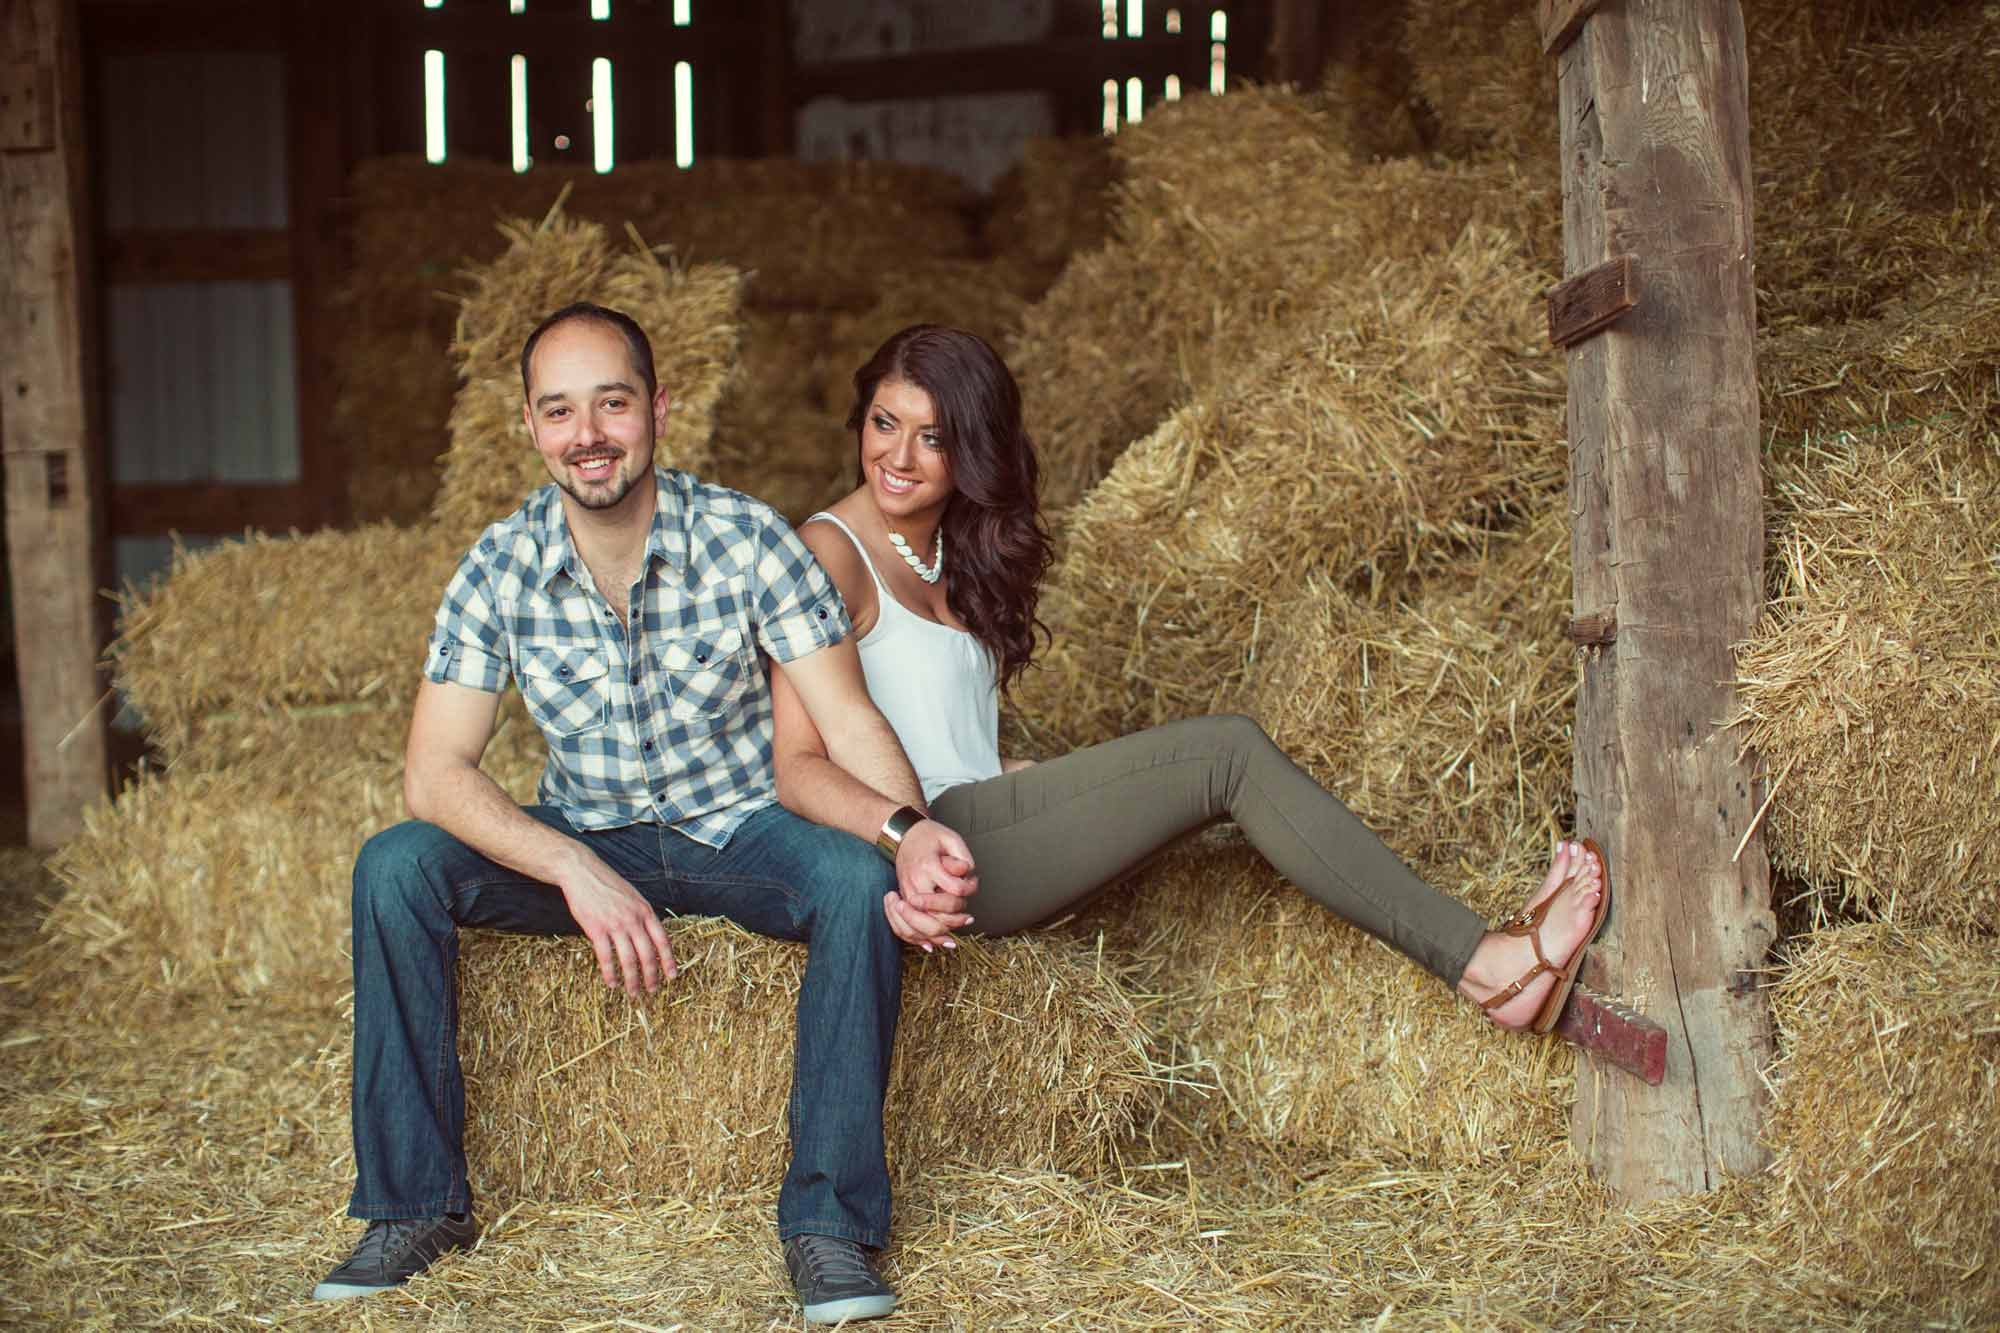 engagement photographer cleveland